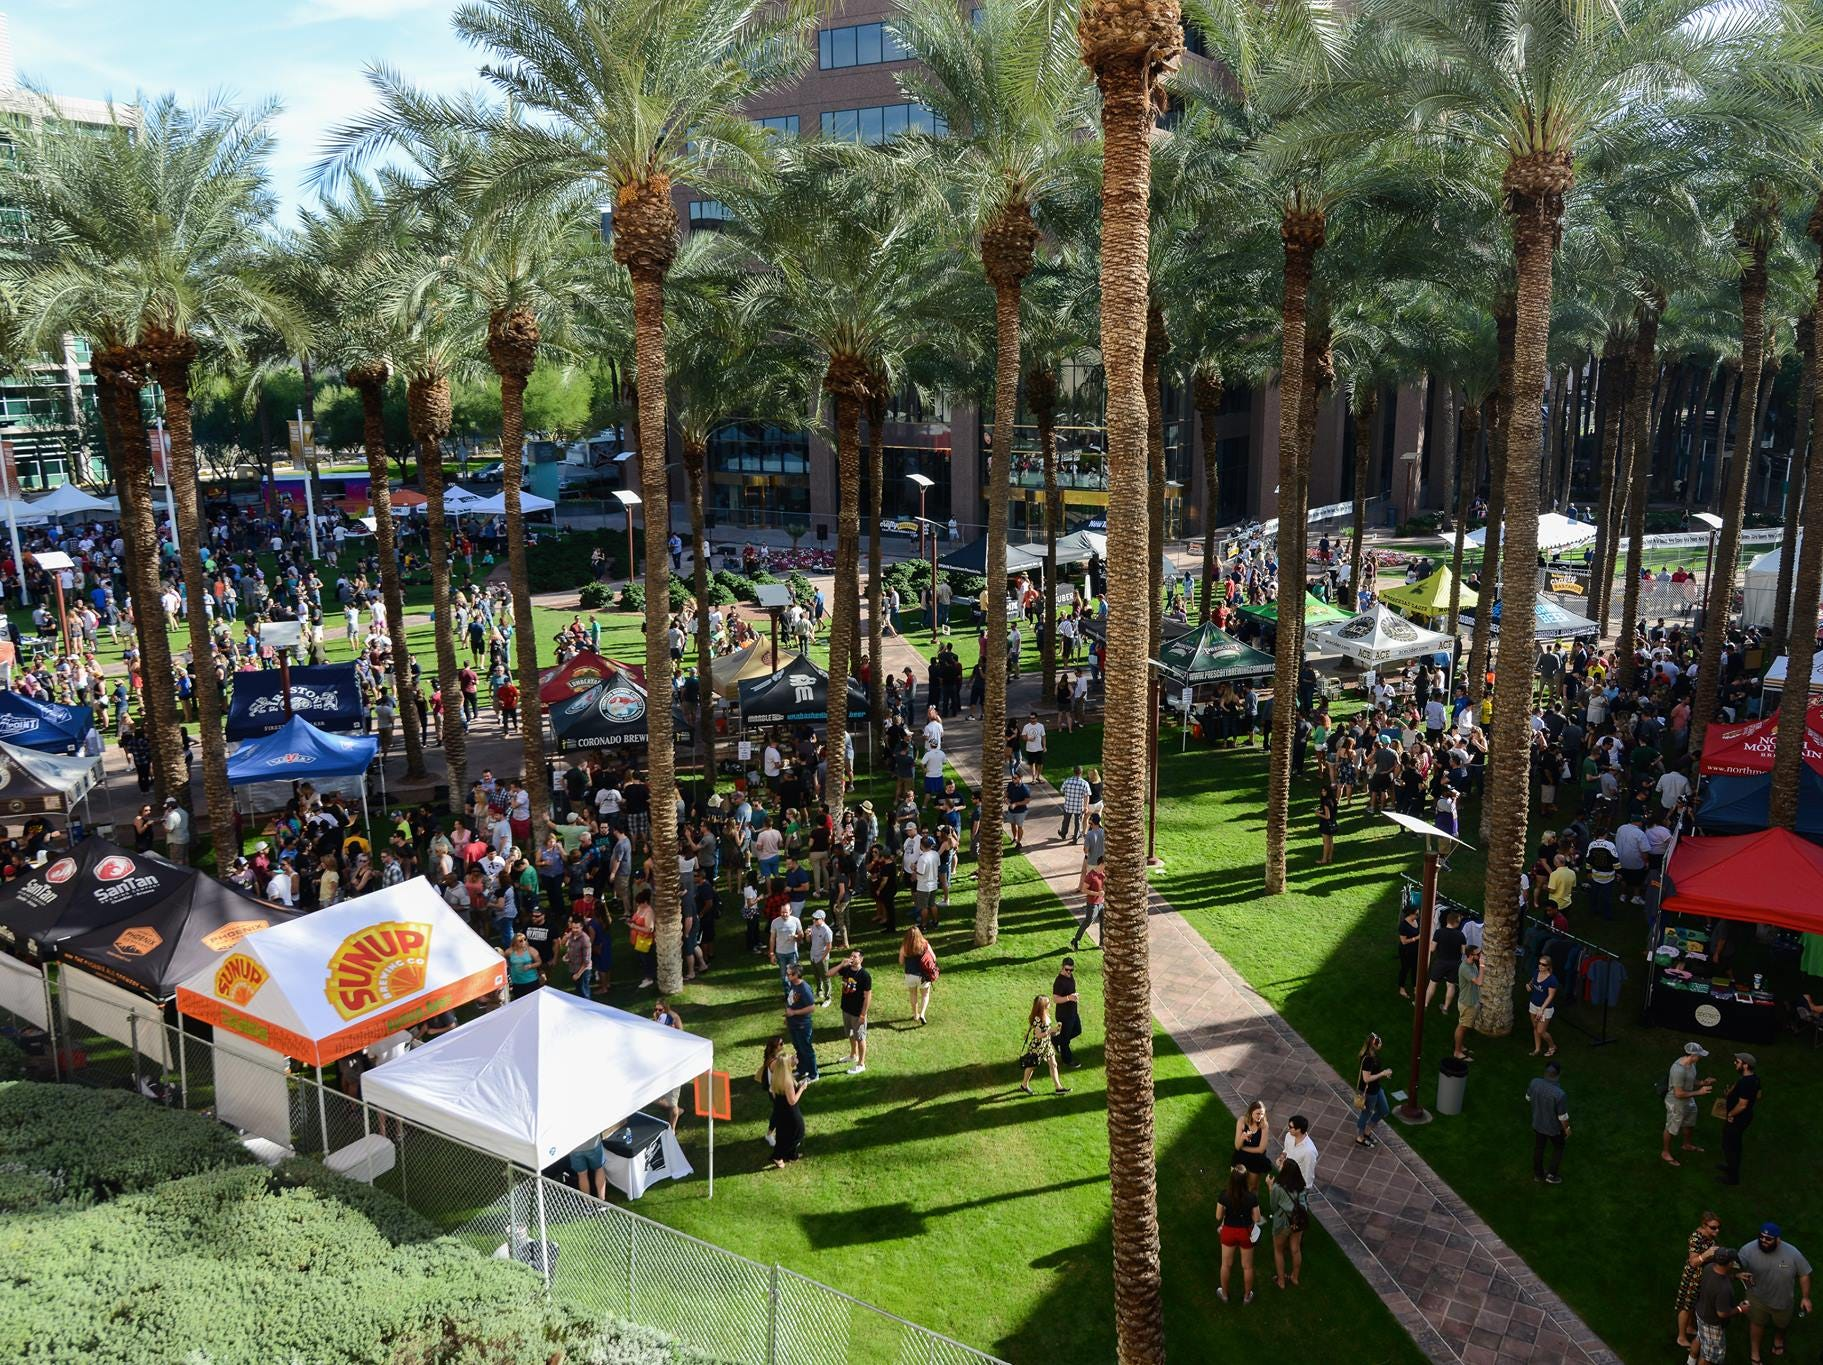 The fifth annual event hosted by thePhoenix New Times features beers from 60 breweries.